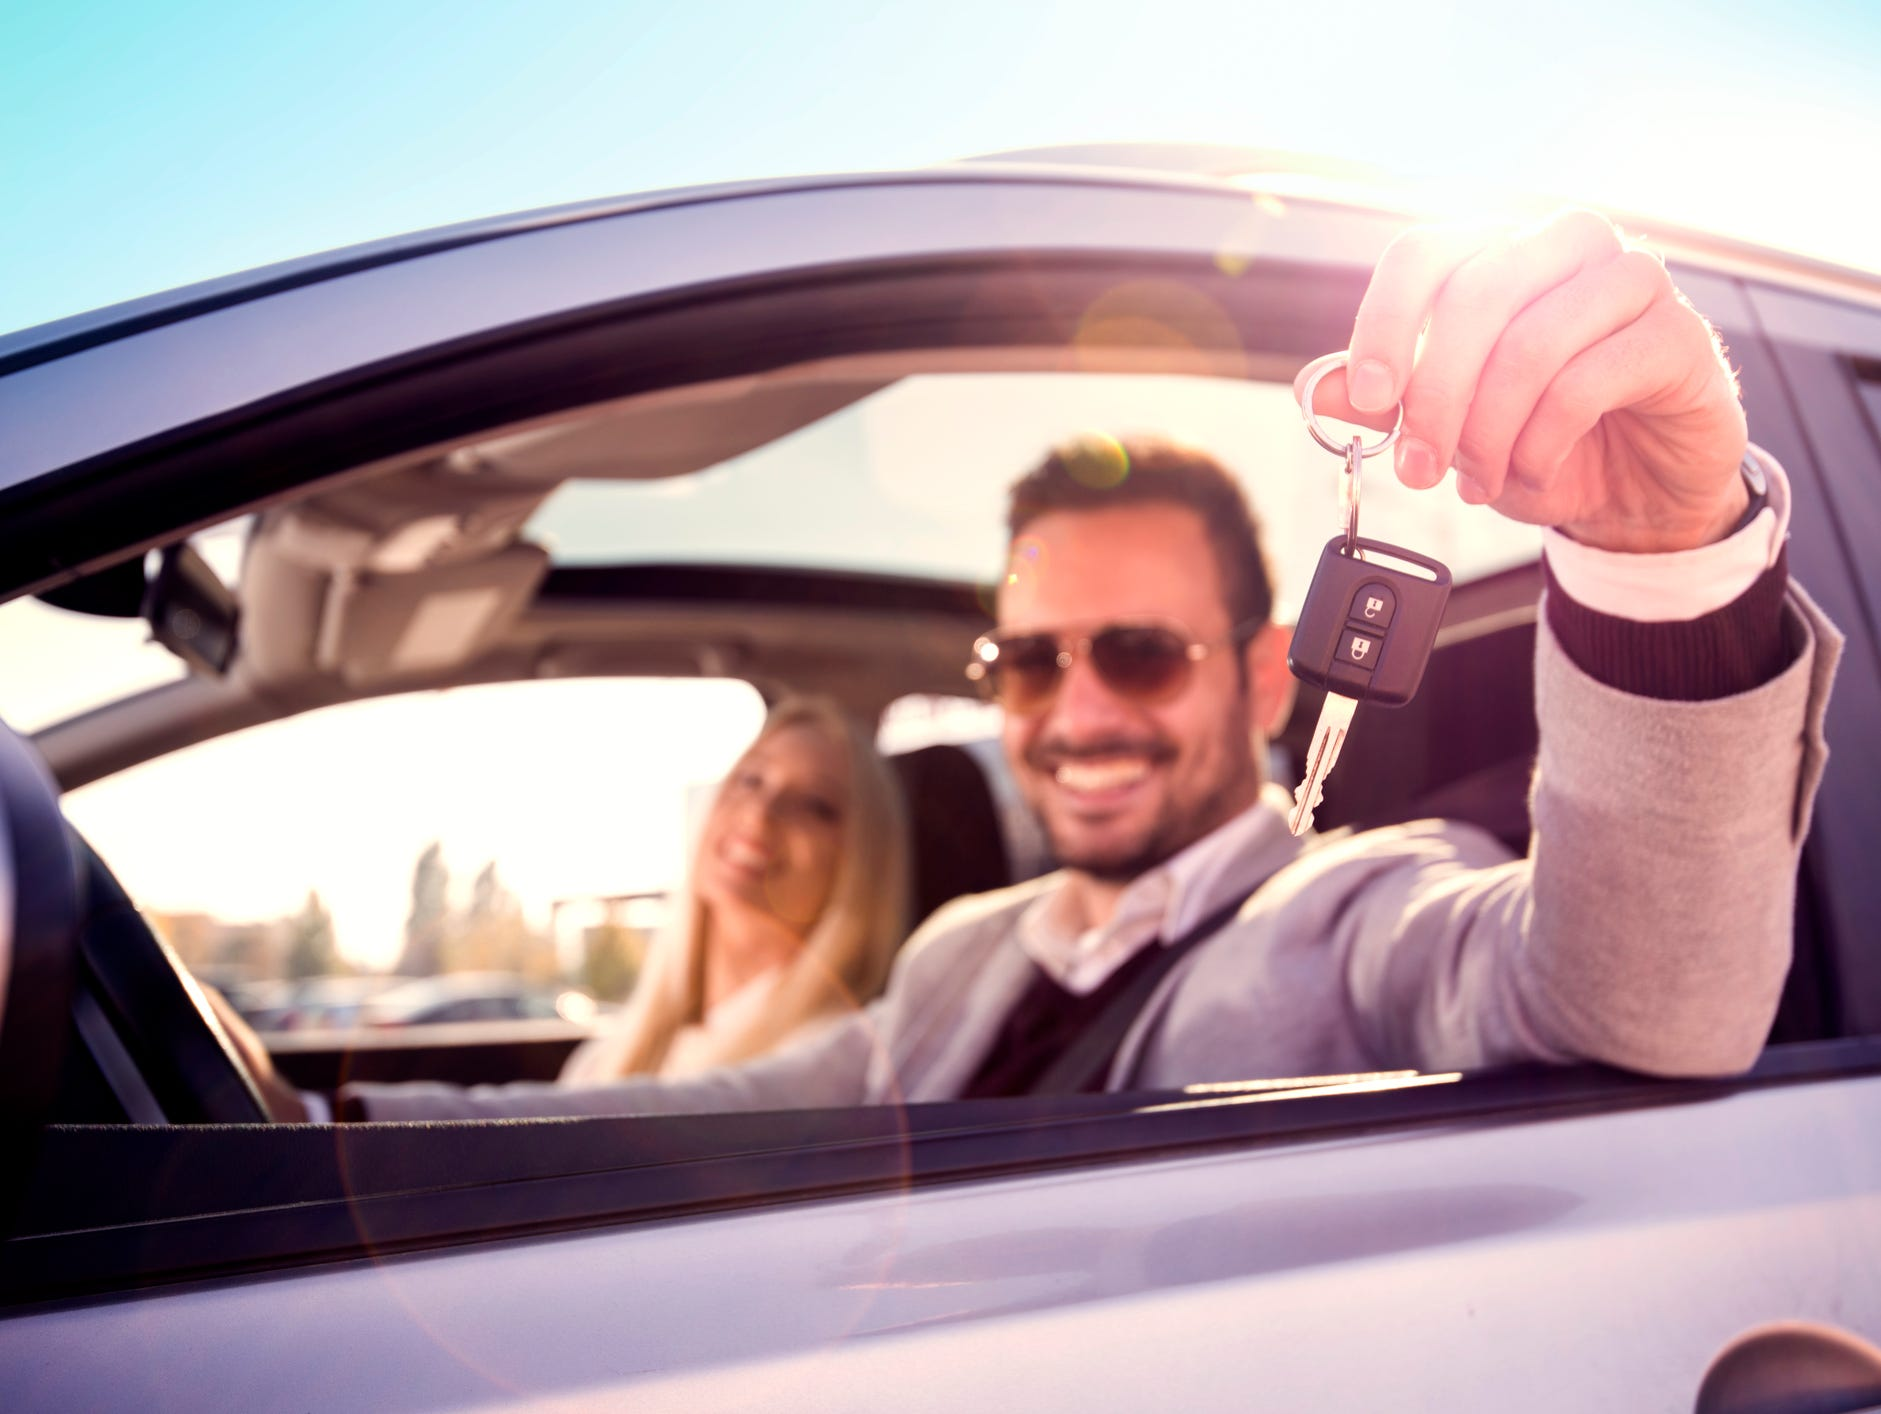 Insiders receive a $20 gas card just for test driving a vehicle at Campbell Chevrolet.